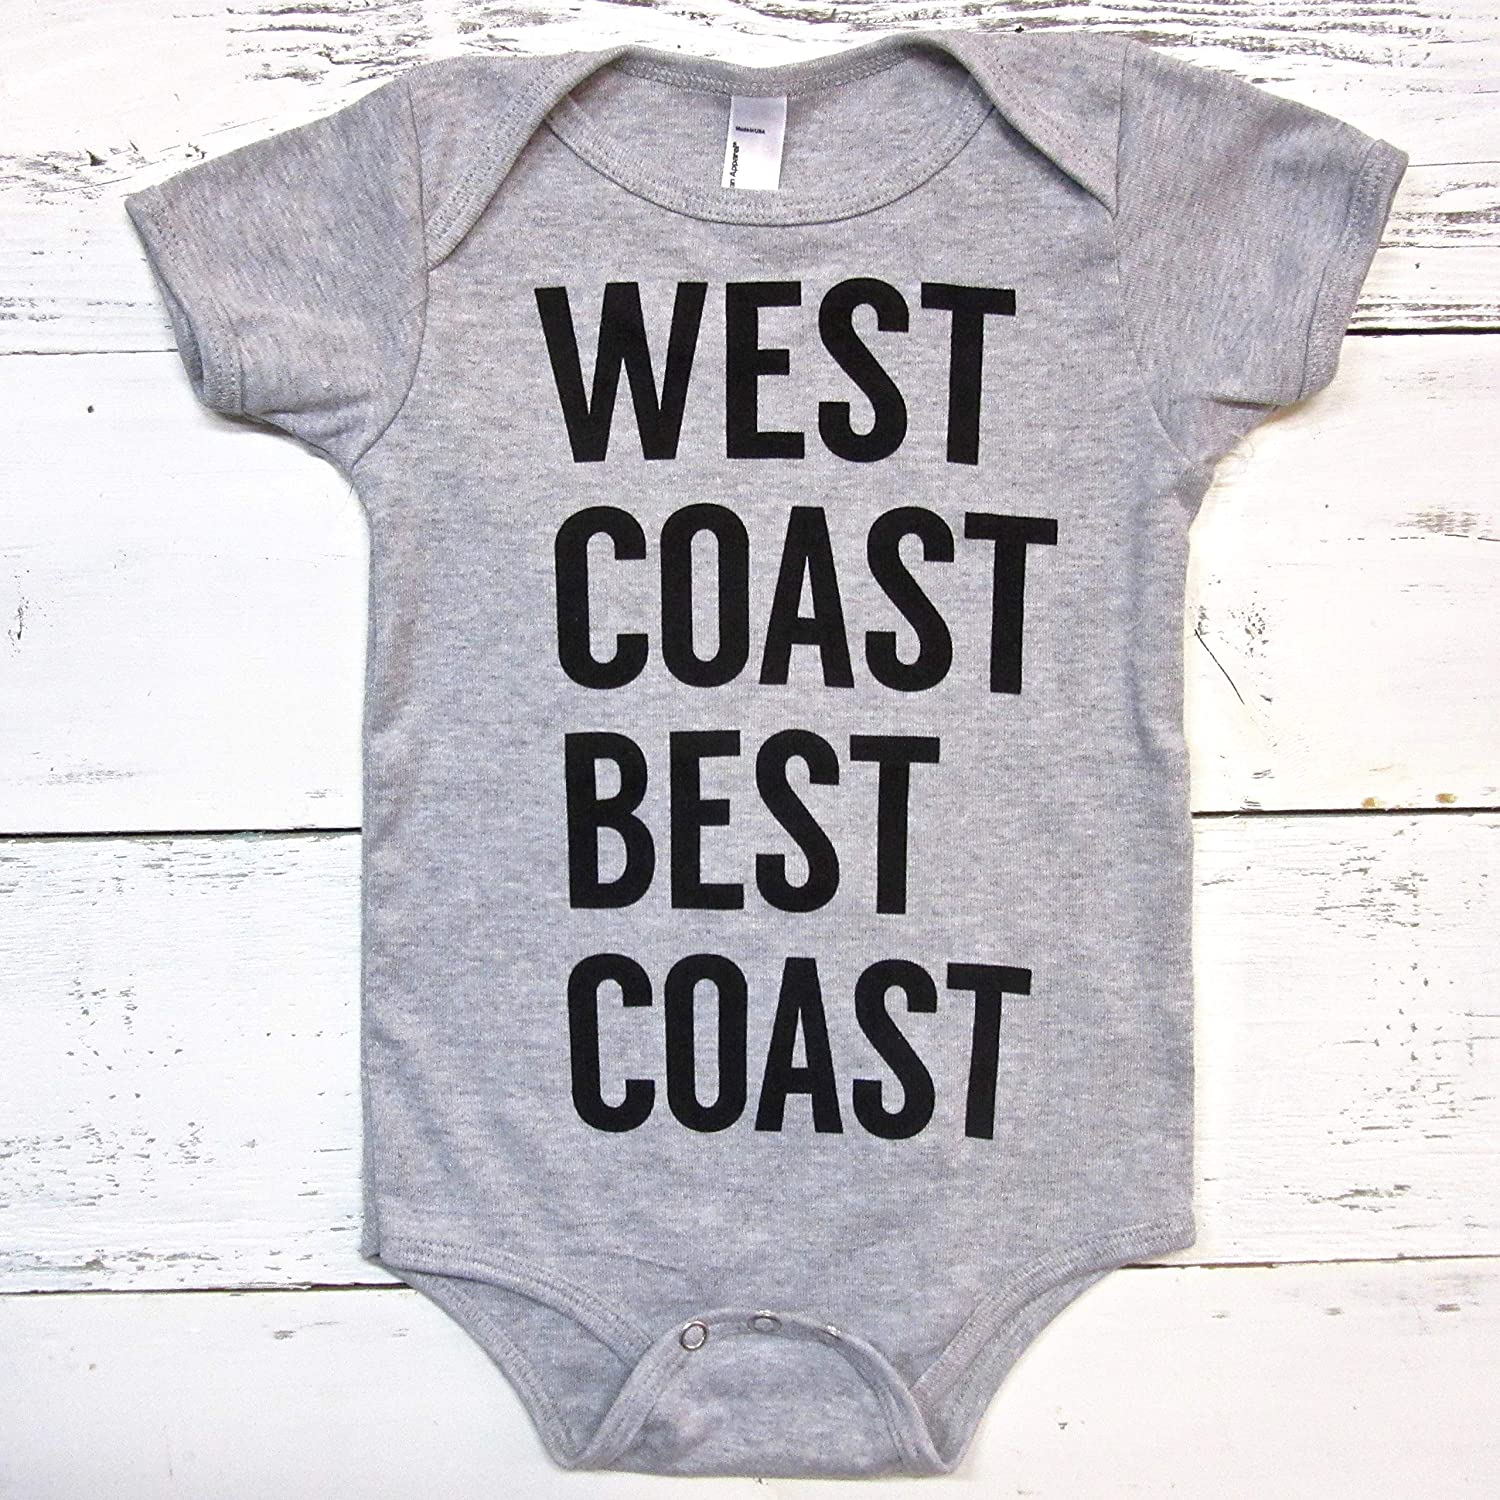 West coast best baby onesie.WCBC body Free Shipping Cheap Bargain Gift unisex suit. Rapid rise In